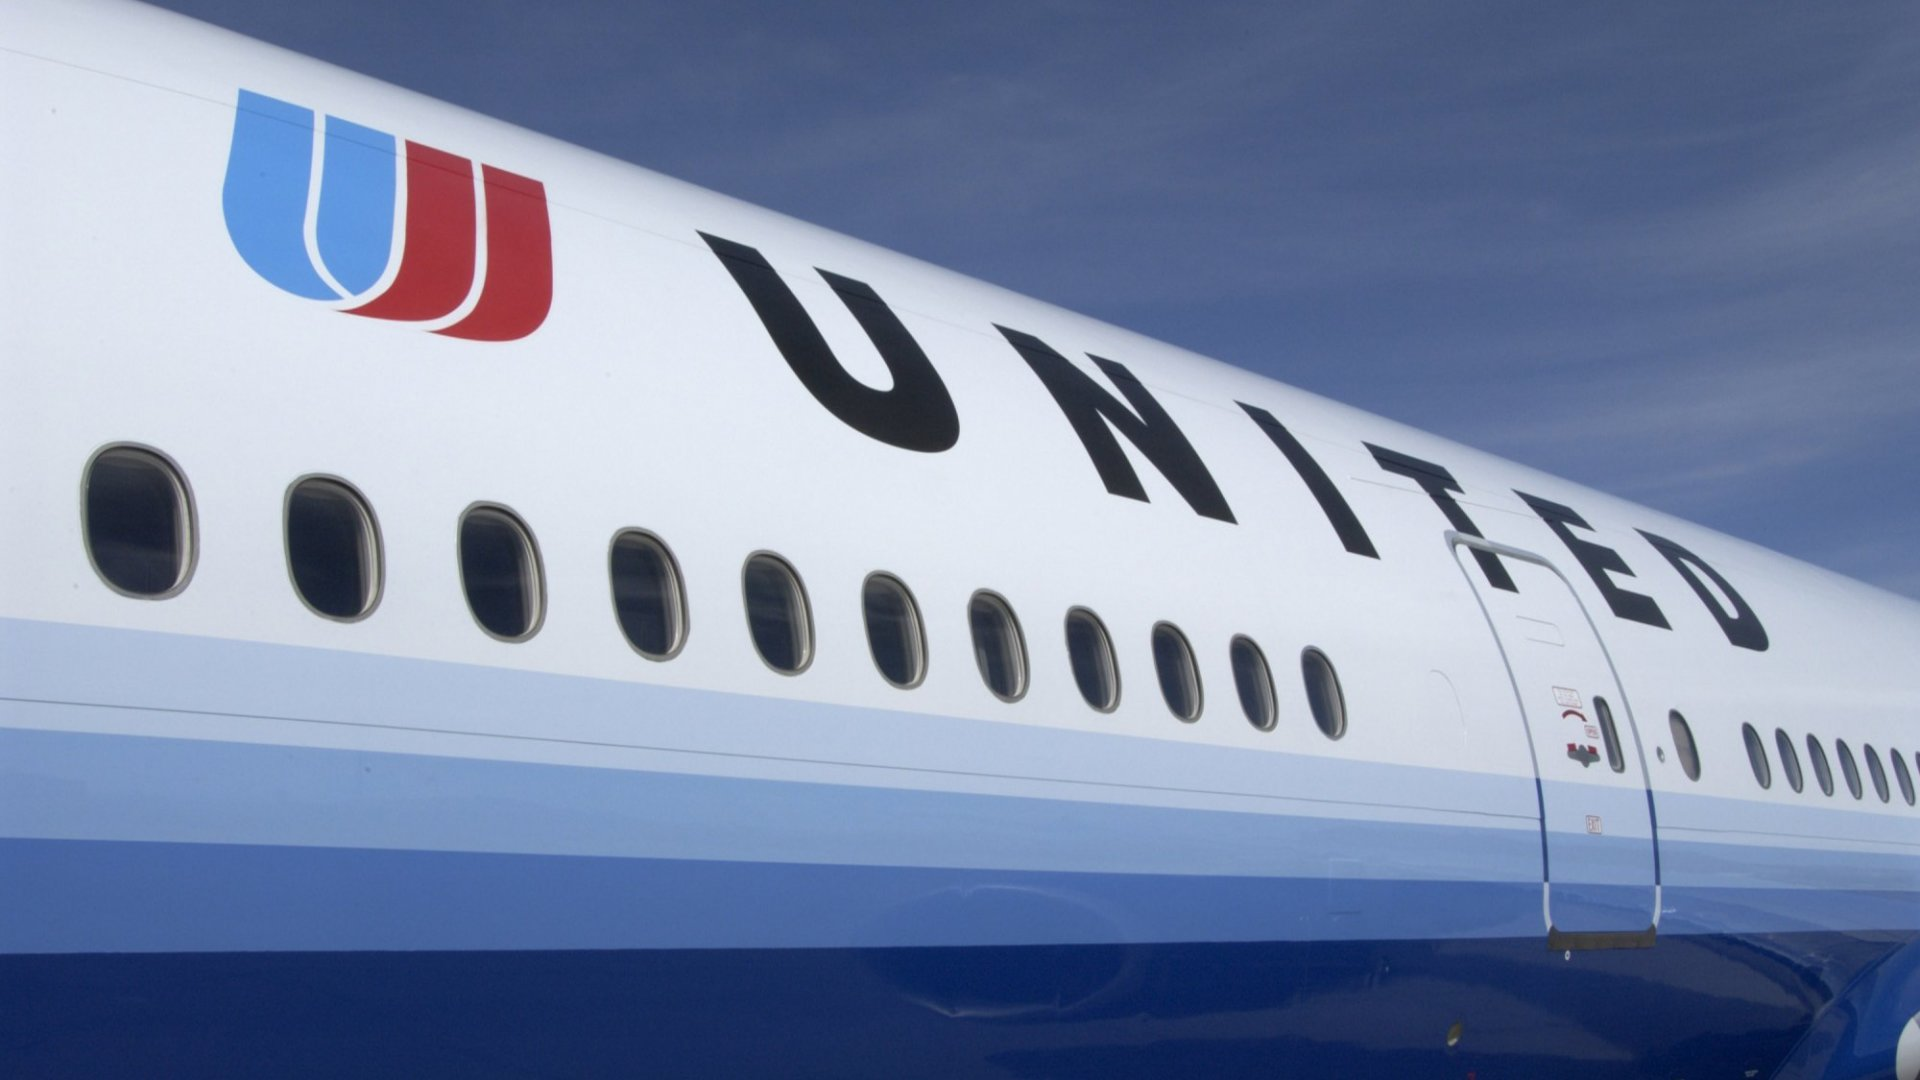 What You Can Learn From United Airline's Botched Crisis Response